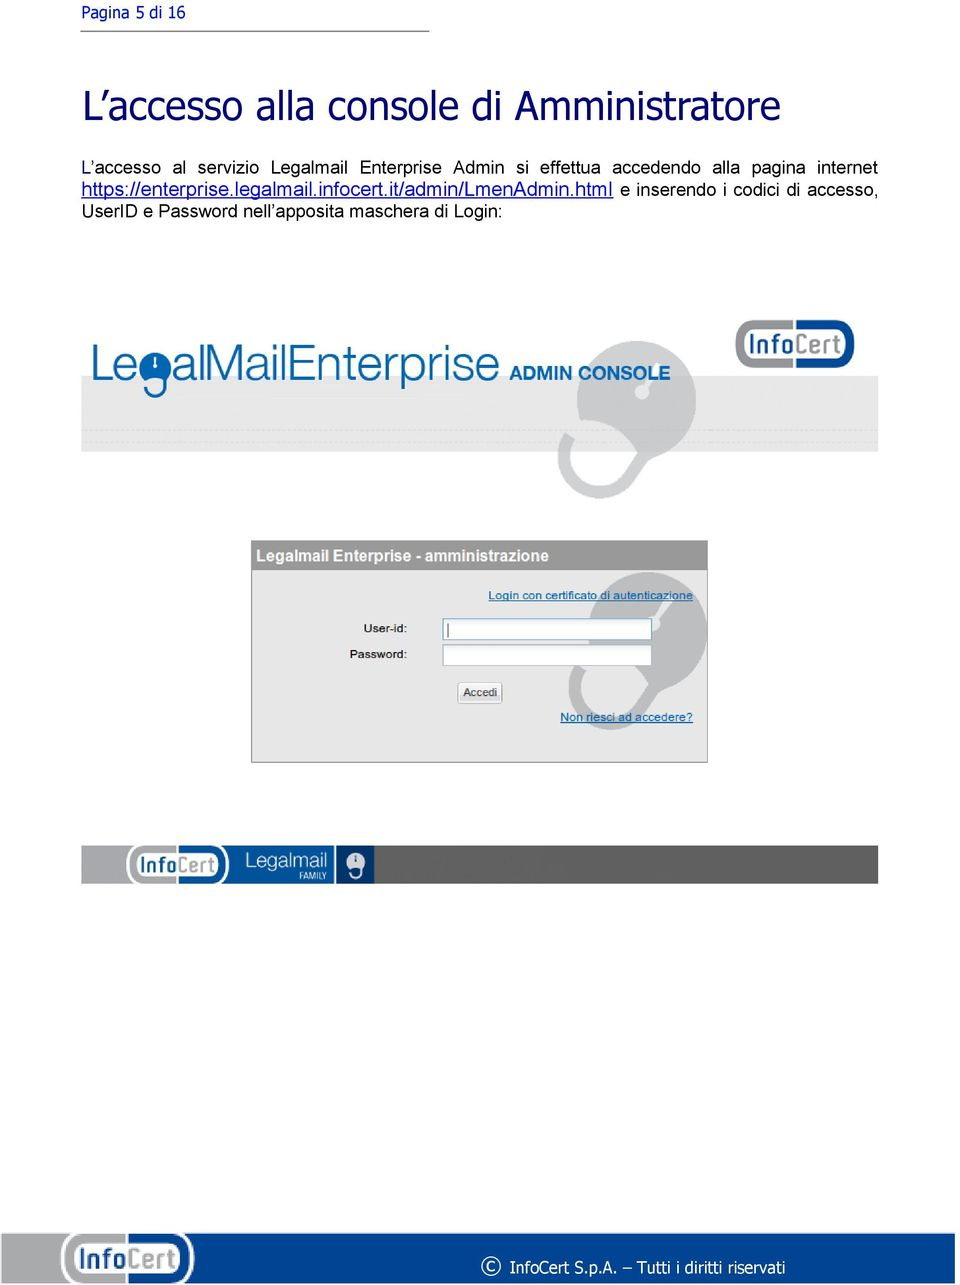 internet https://enterprise.legalmail.infocert.it/admin/lmenadmin.